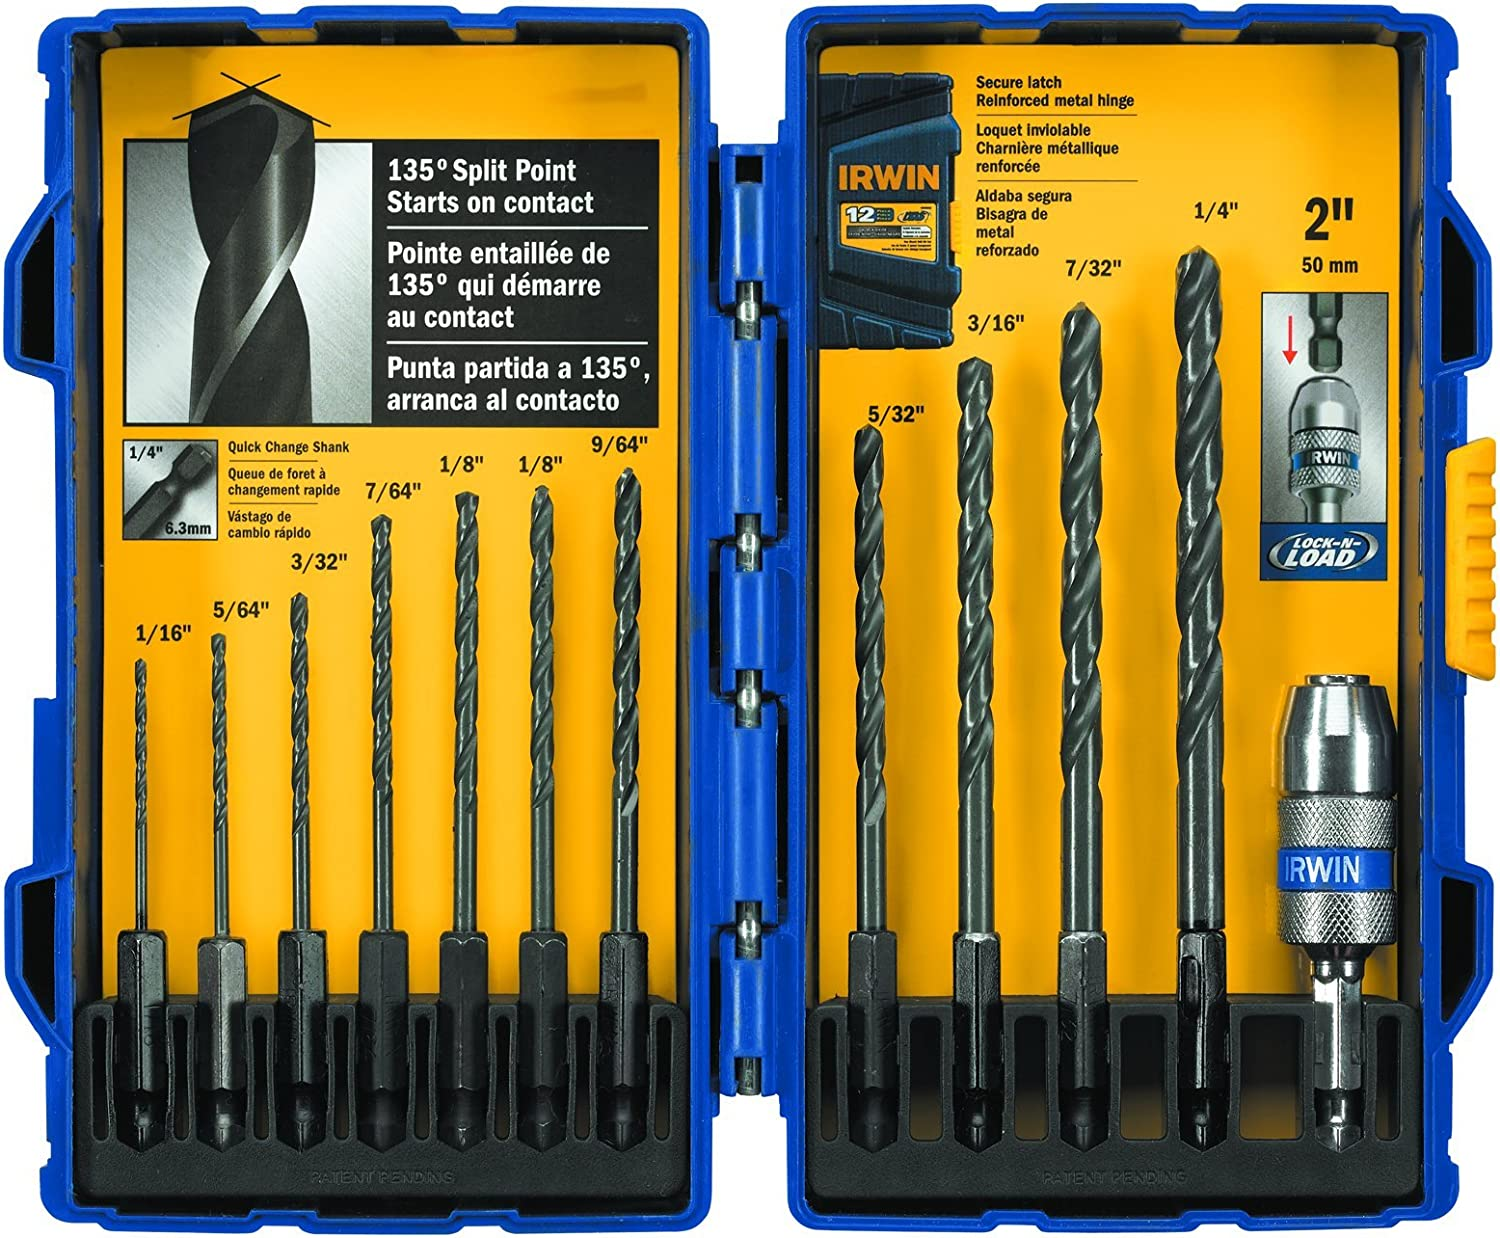 Straight Shank Twist Bits for Power Drill Drill Bit Set Black Oxide Finish and High-Speed Steel Build/Â 21 Piece Kit with Storage Case by Stalwart